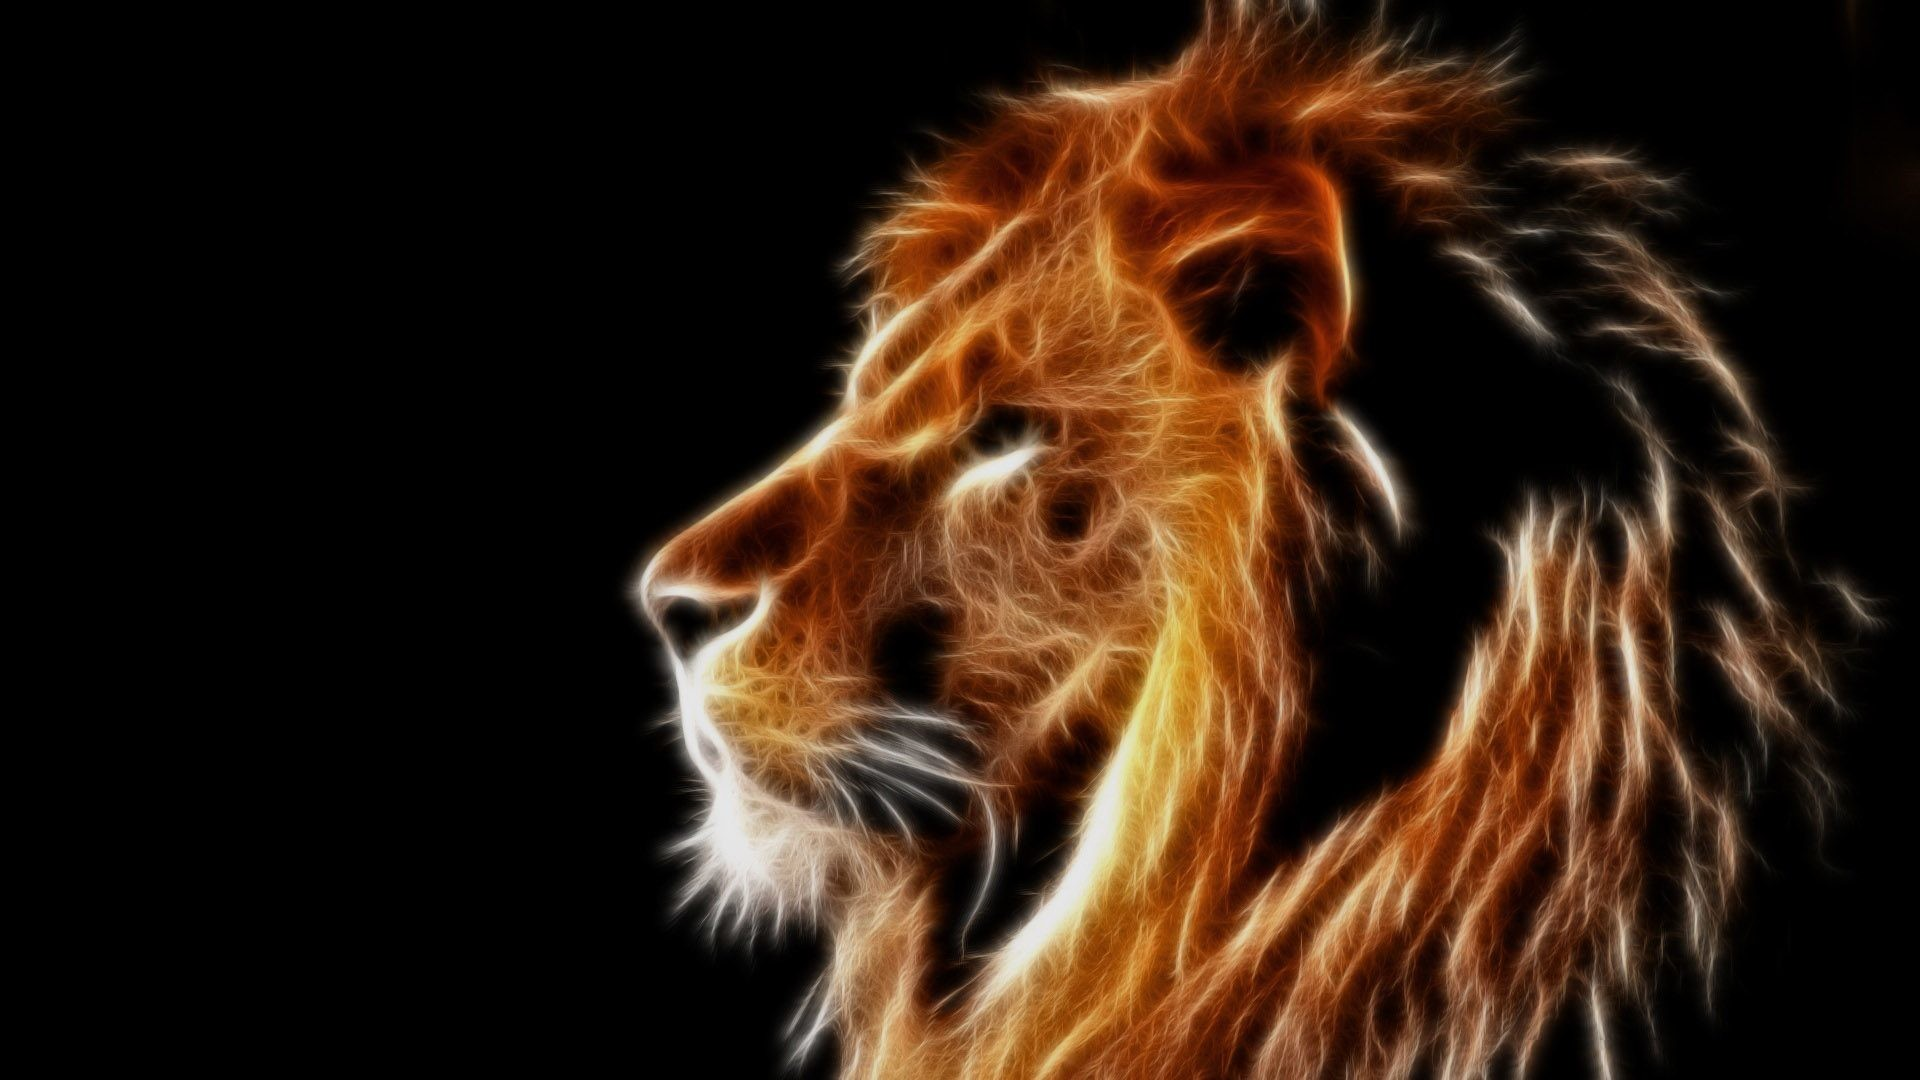 Lion Live Wallpaper Iphone X Roaring Lion Wallpaper 67 Images